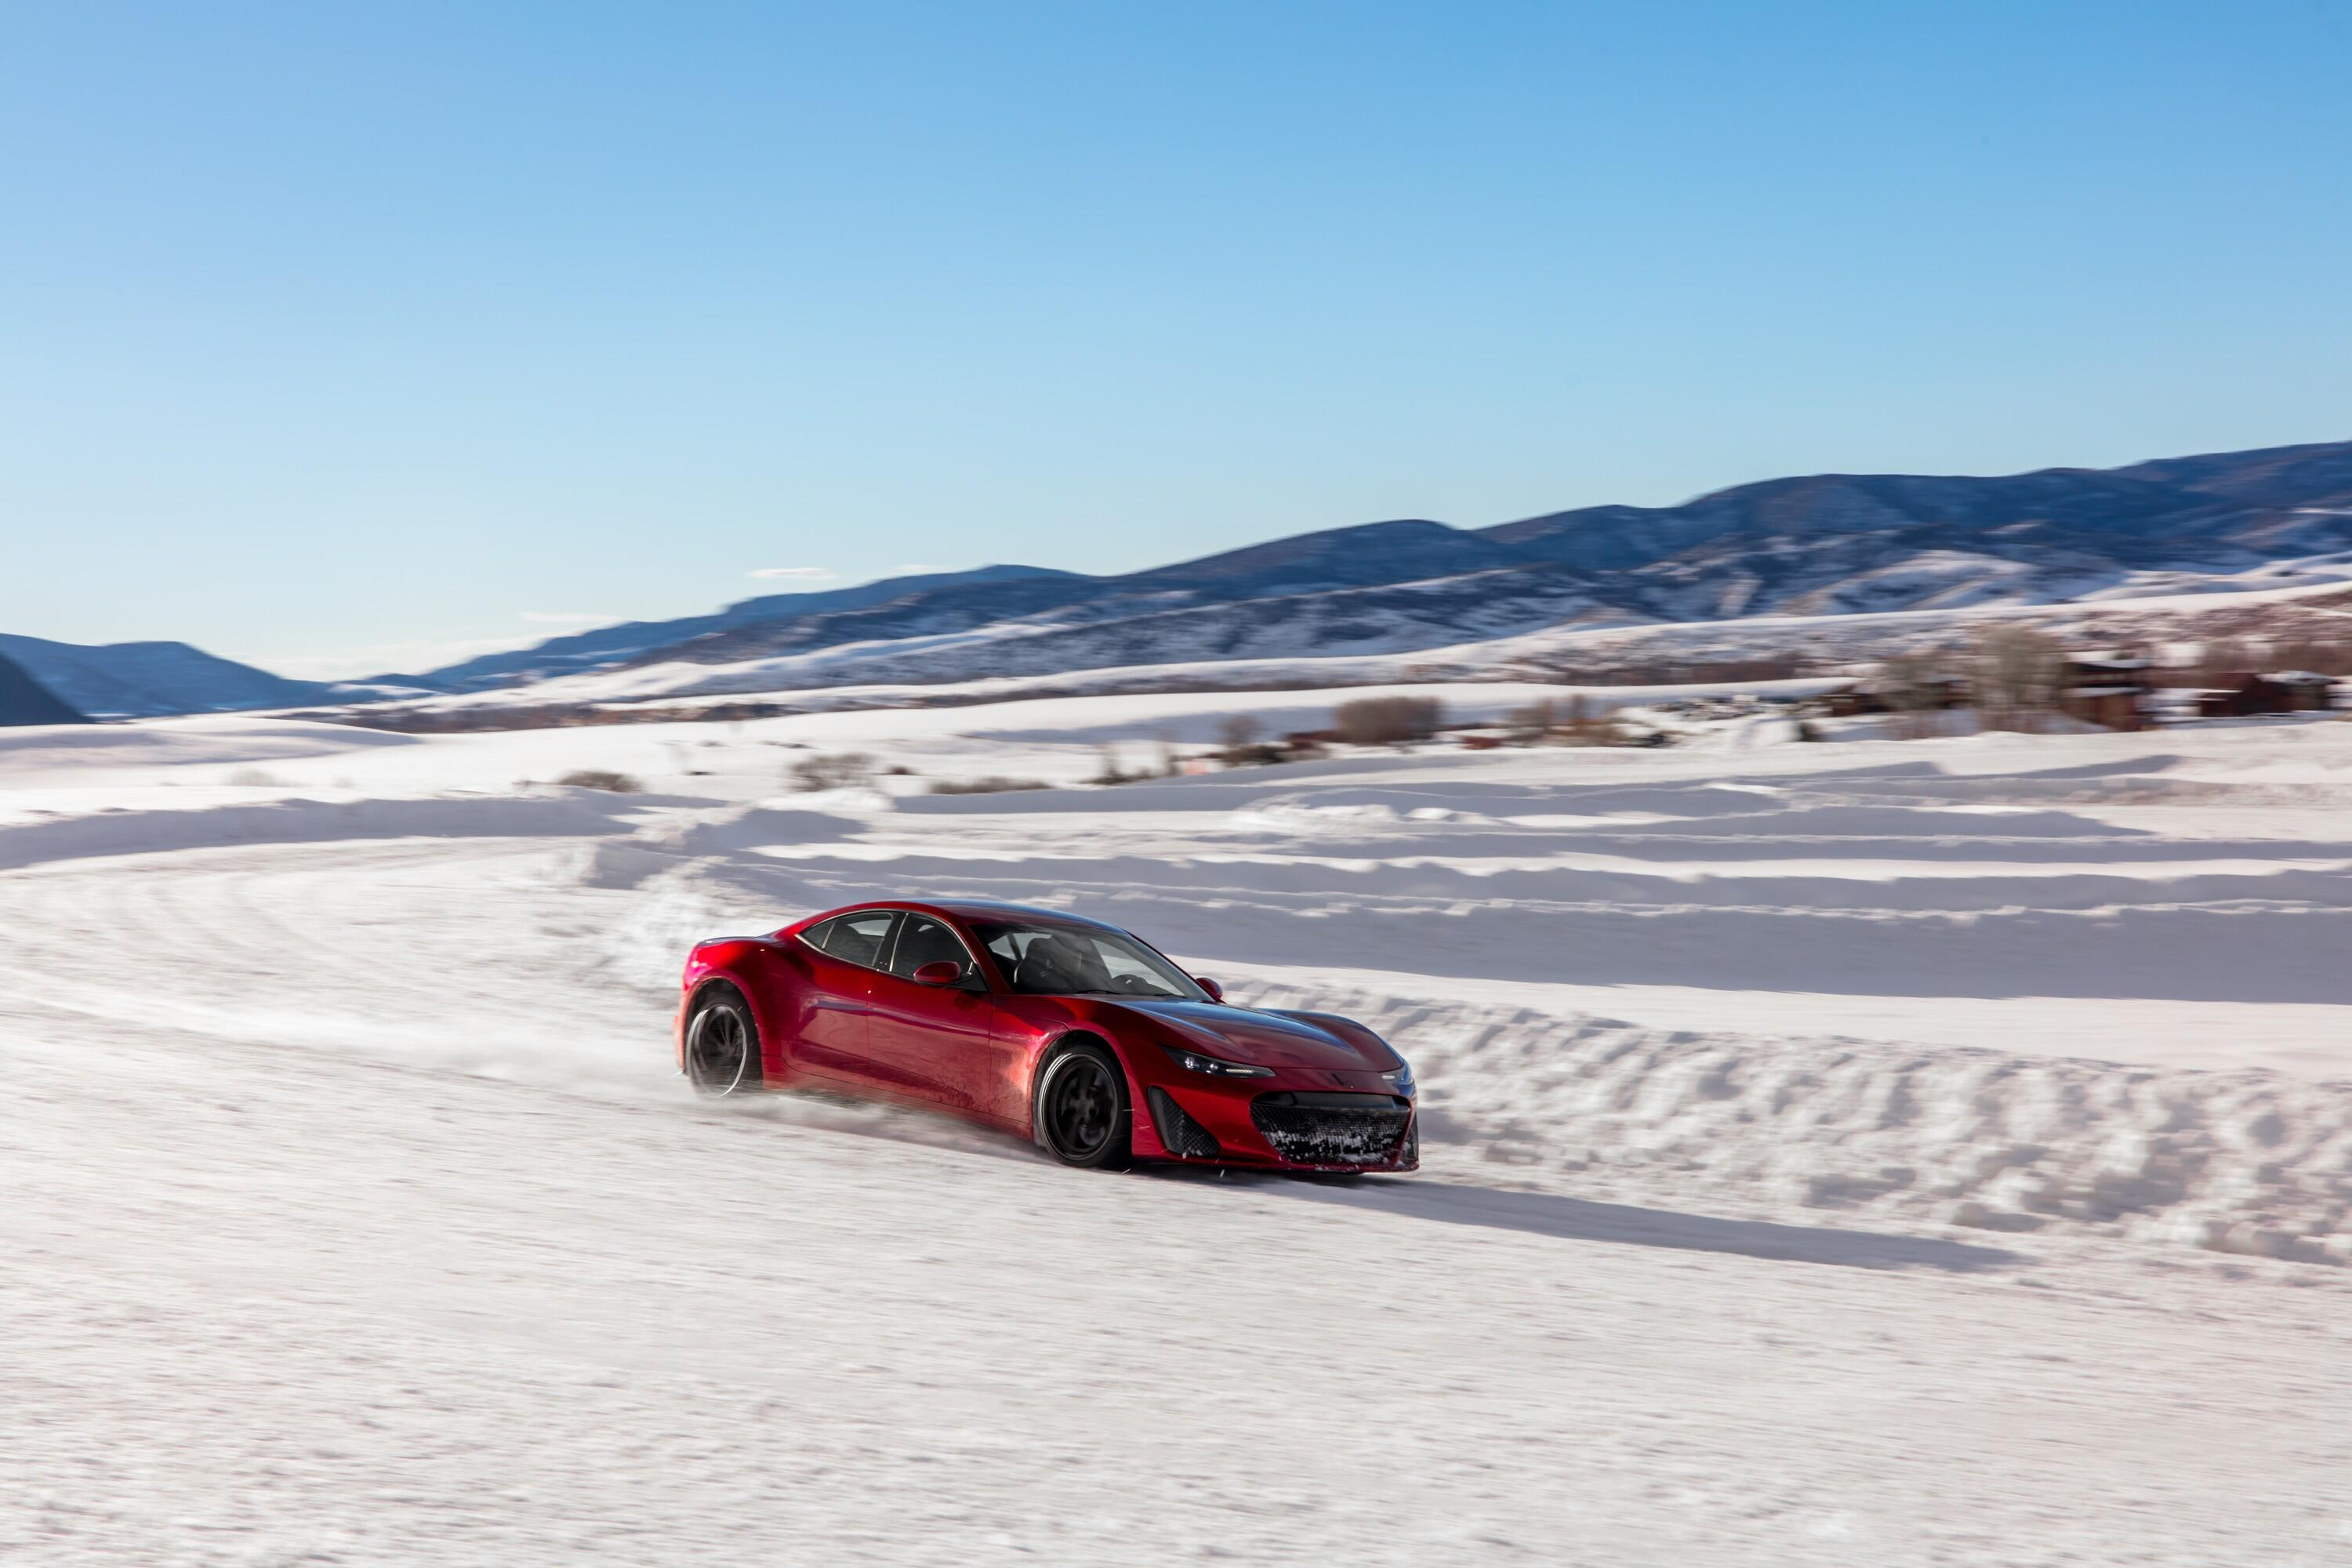 drako-motors-gte-winter-testing-9